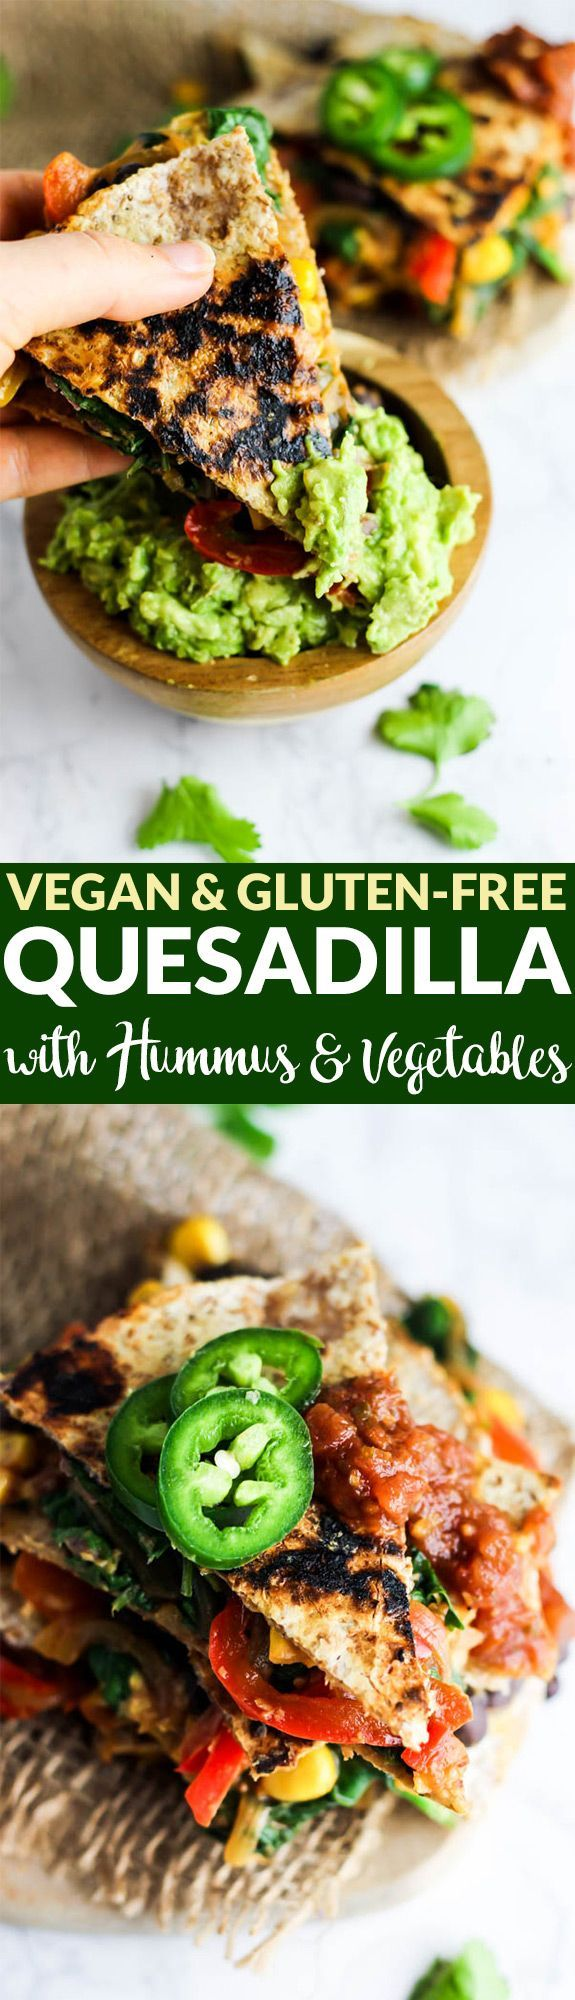 Enjoy this Vegan Quesadilla with Hummus & Vegetables for a healthy, flavorful meal or appetizer that is irresistible! Don't forget the guac. (gluten-free) Made with @HopeFoods. #spon